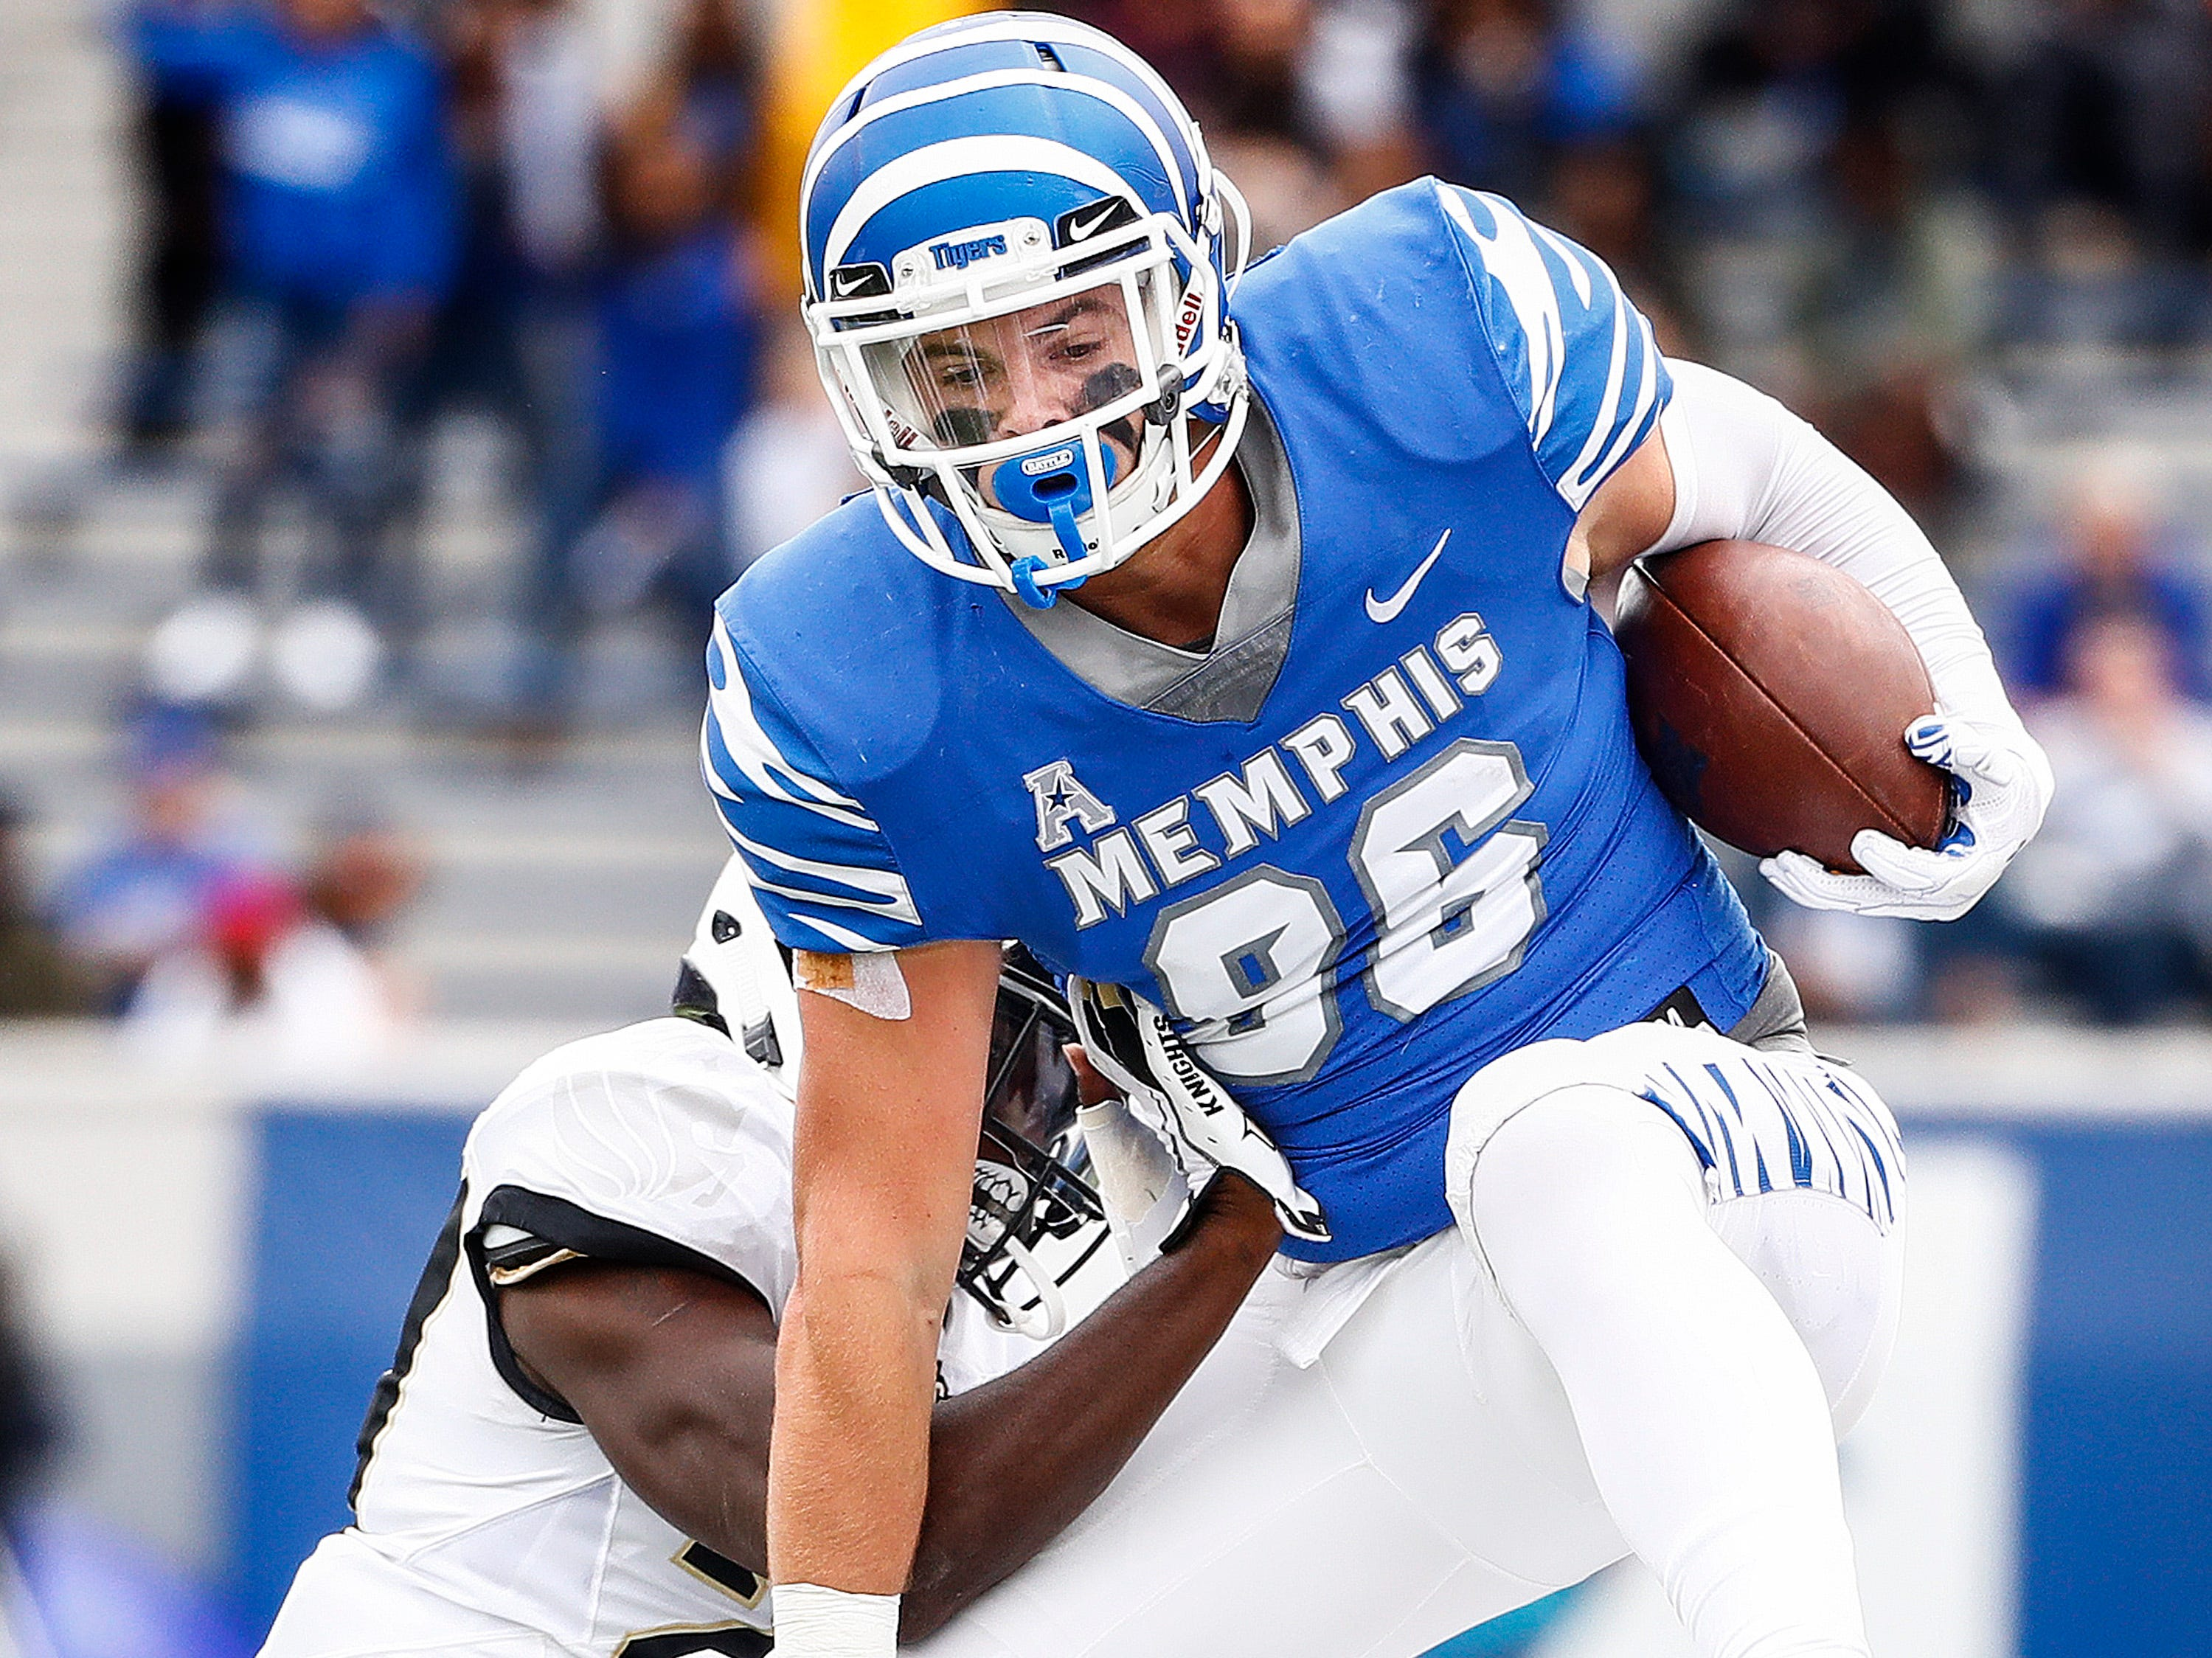 Memphis tight end Joey Magnifico (top) cups over the Central Florida defense during action in Memphis, Tenn., Saturday, October 13, 2018.